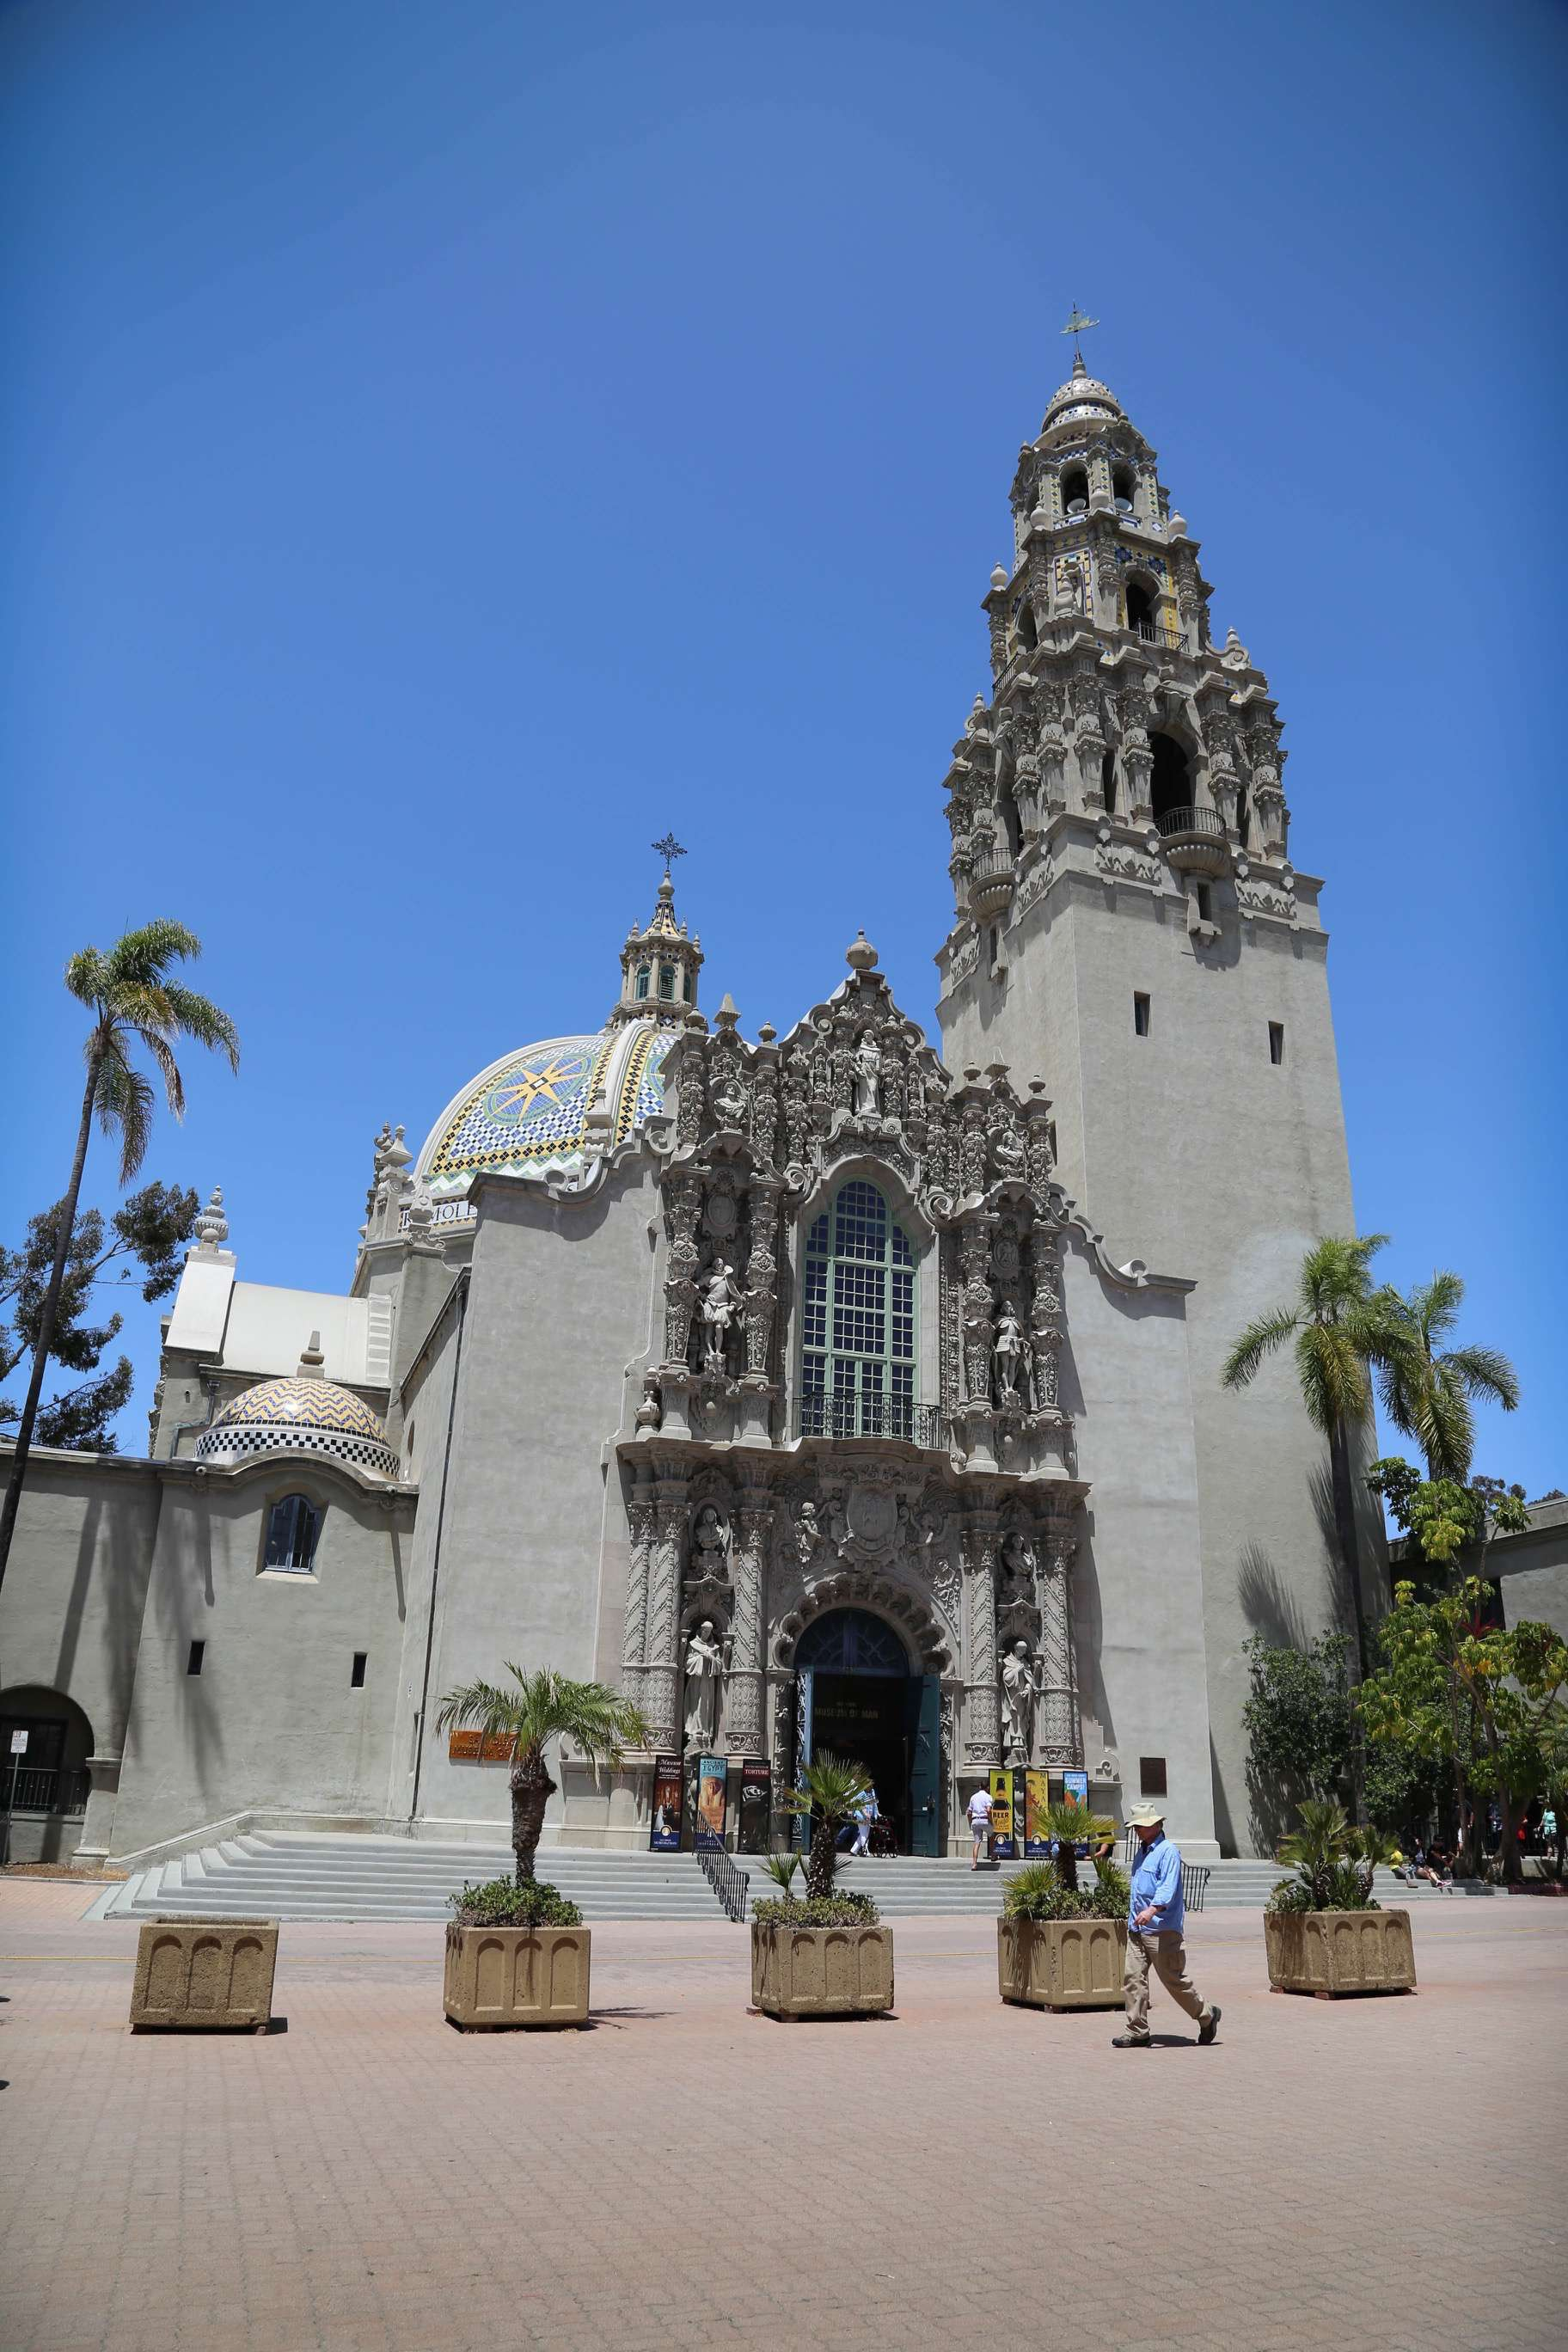 Balboa Park is home to the San Diego Zoo, lovely gardens and beautifully maintained buildings that retain their Spanish Colonial appearance.